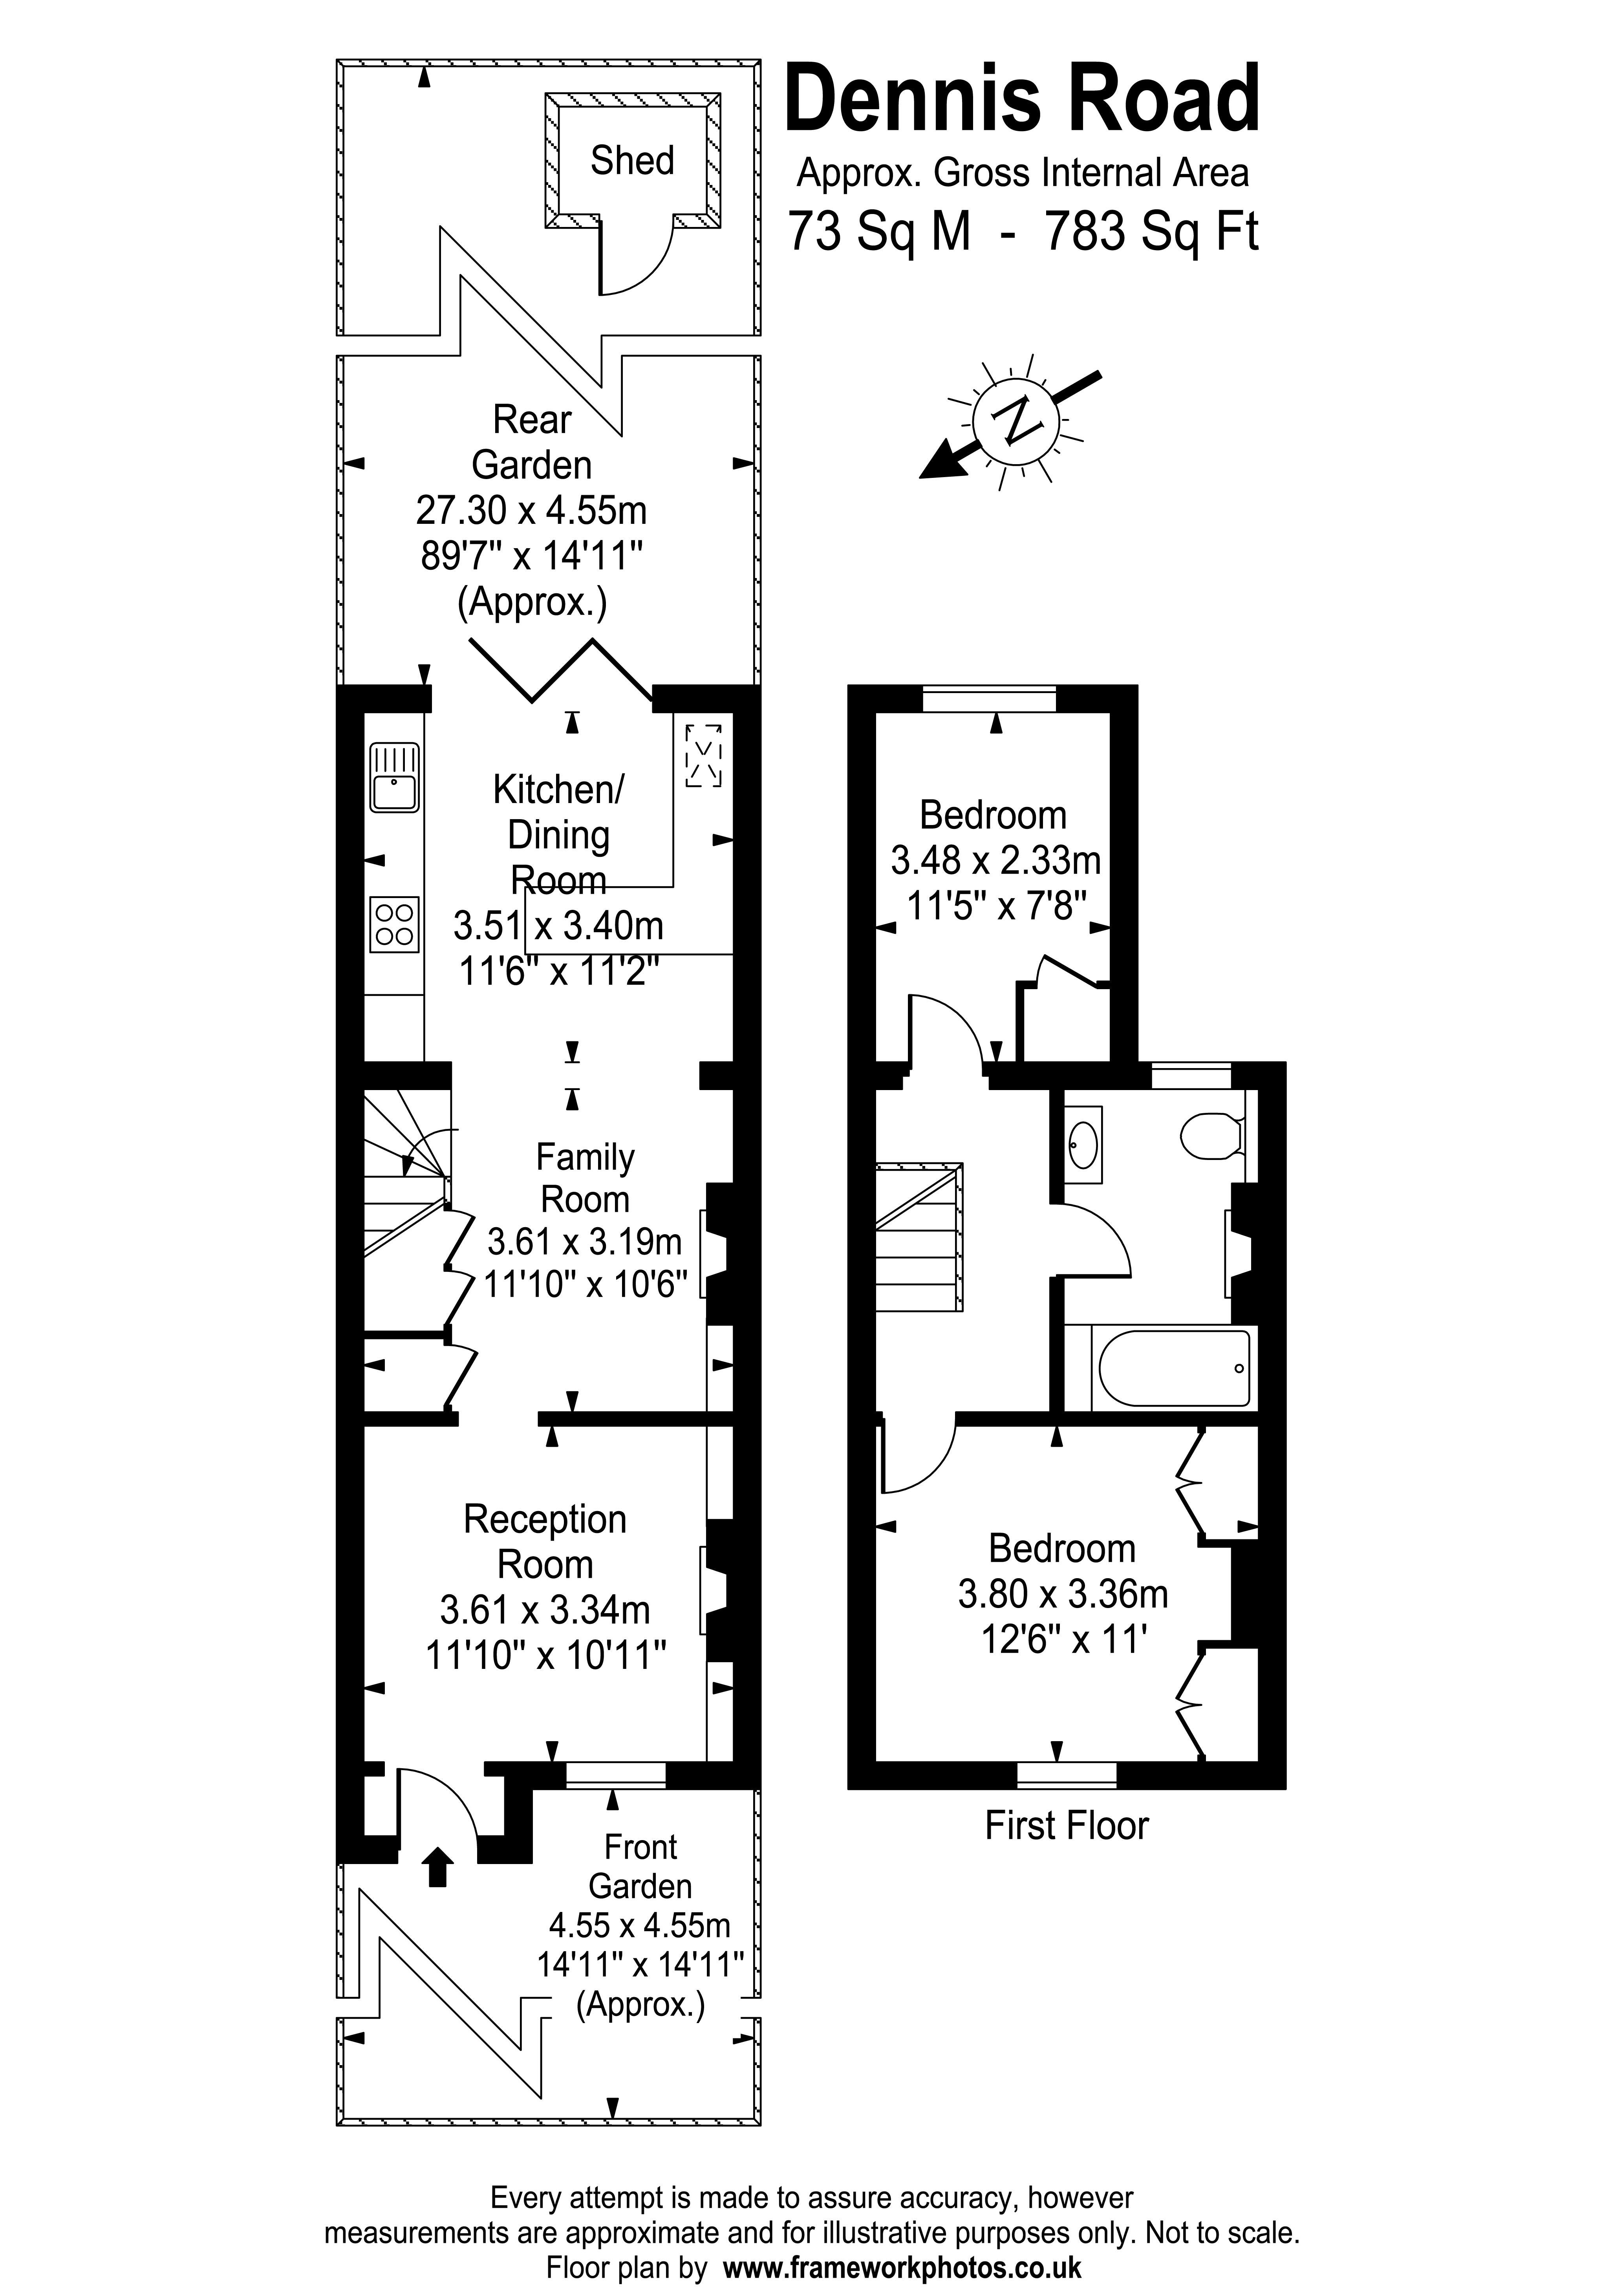 Floorplans For Dennis Road, East Molesey